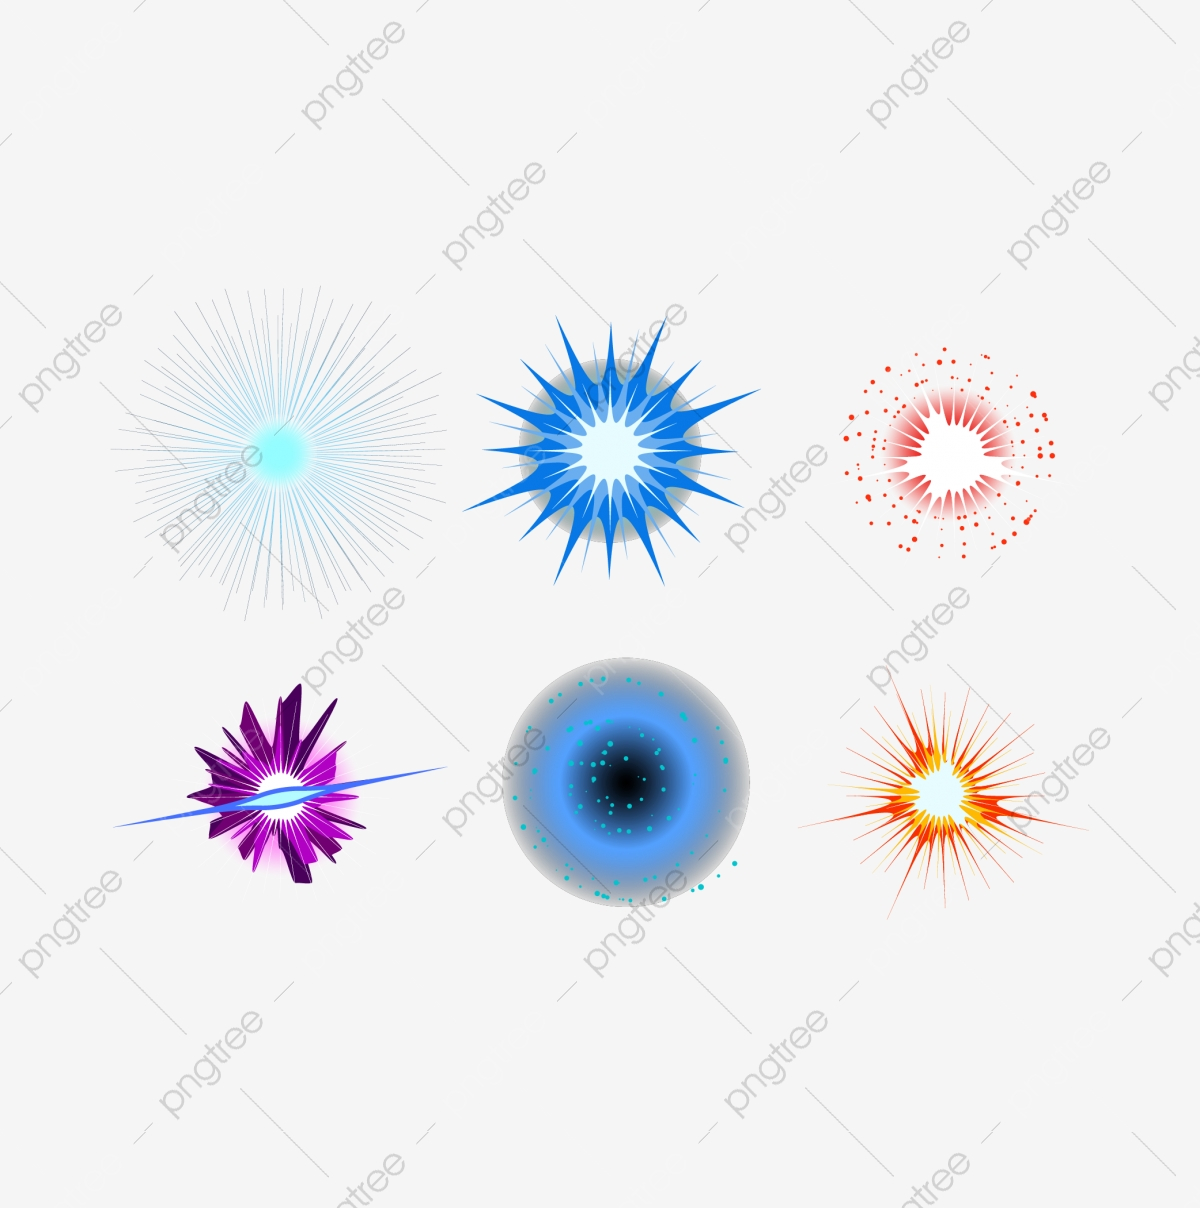 Galaxy clipart category. Spiral milky way planet